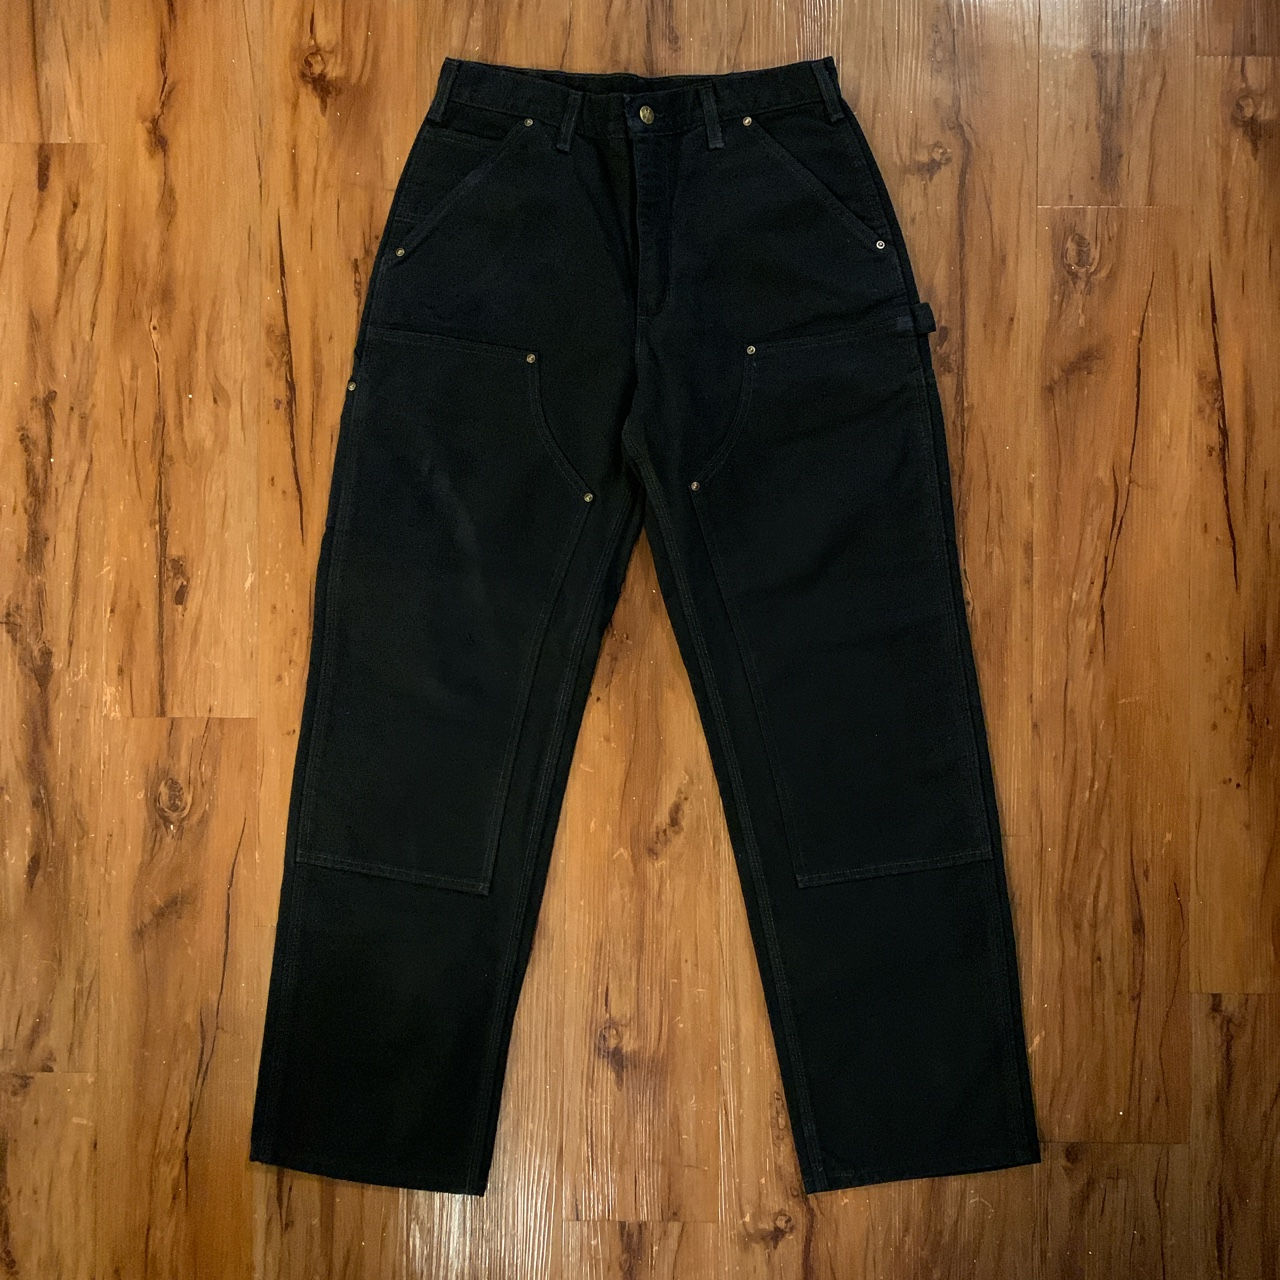 Product Image 1 - black carhartt pants dungaree fit, double